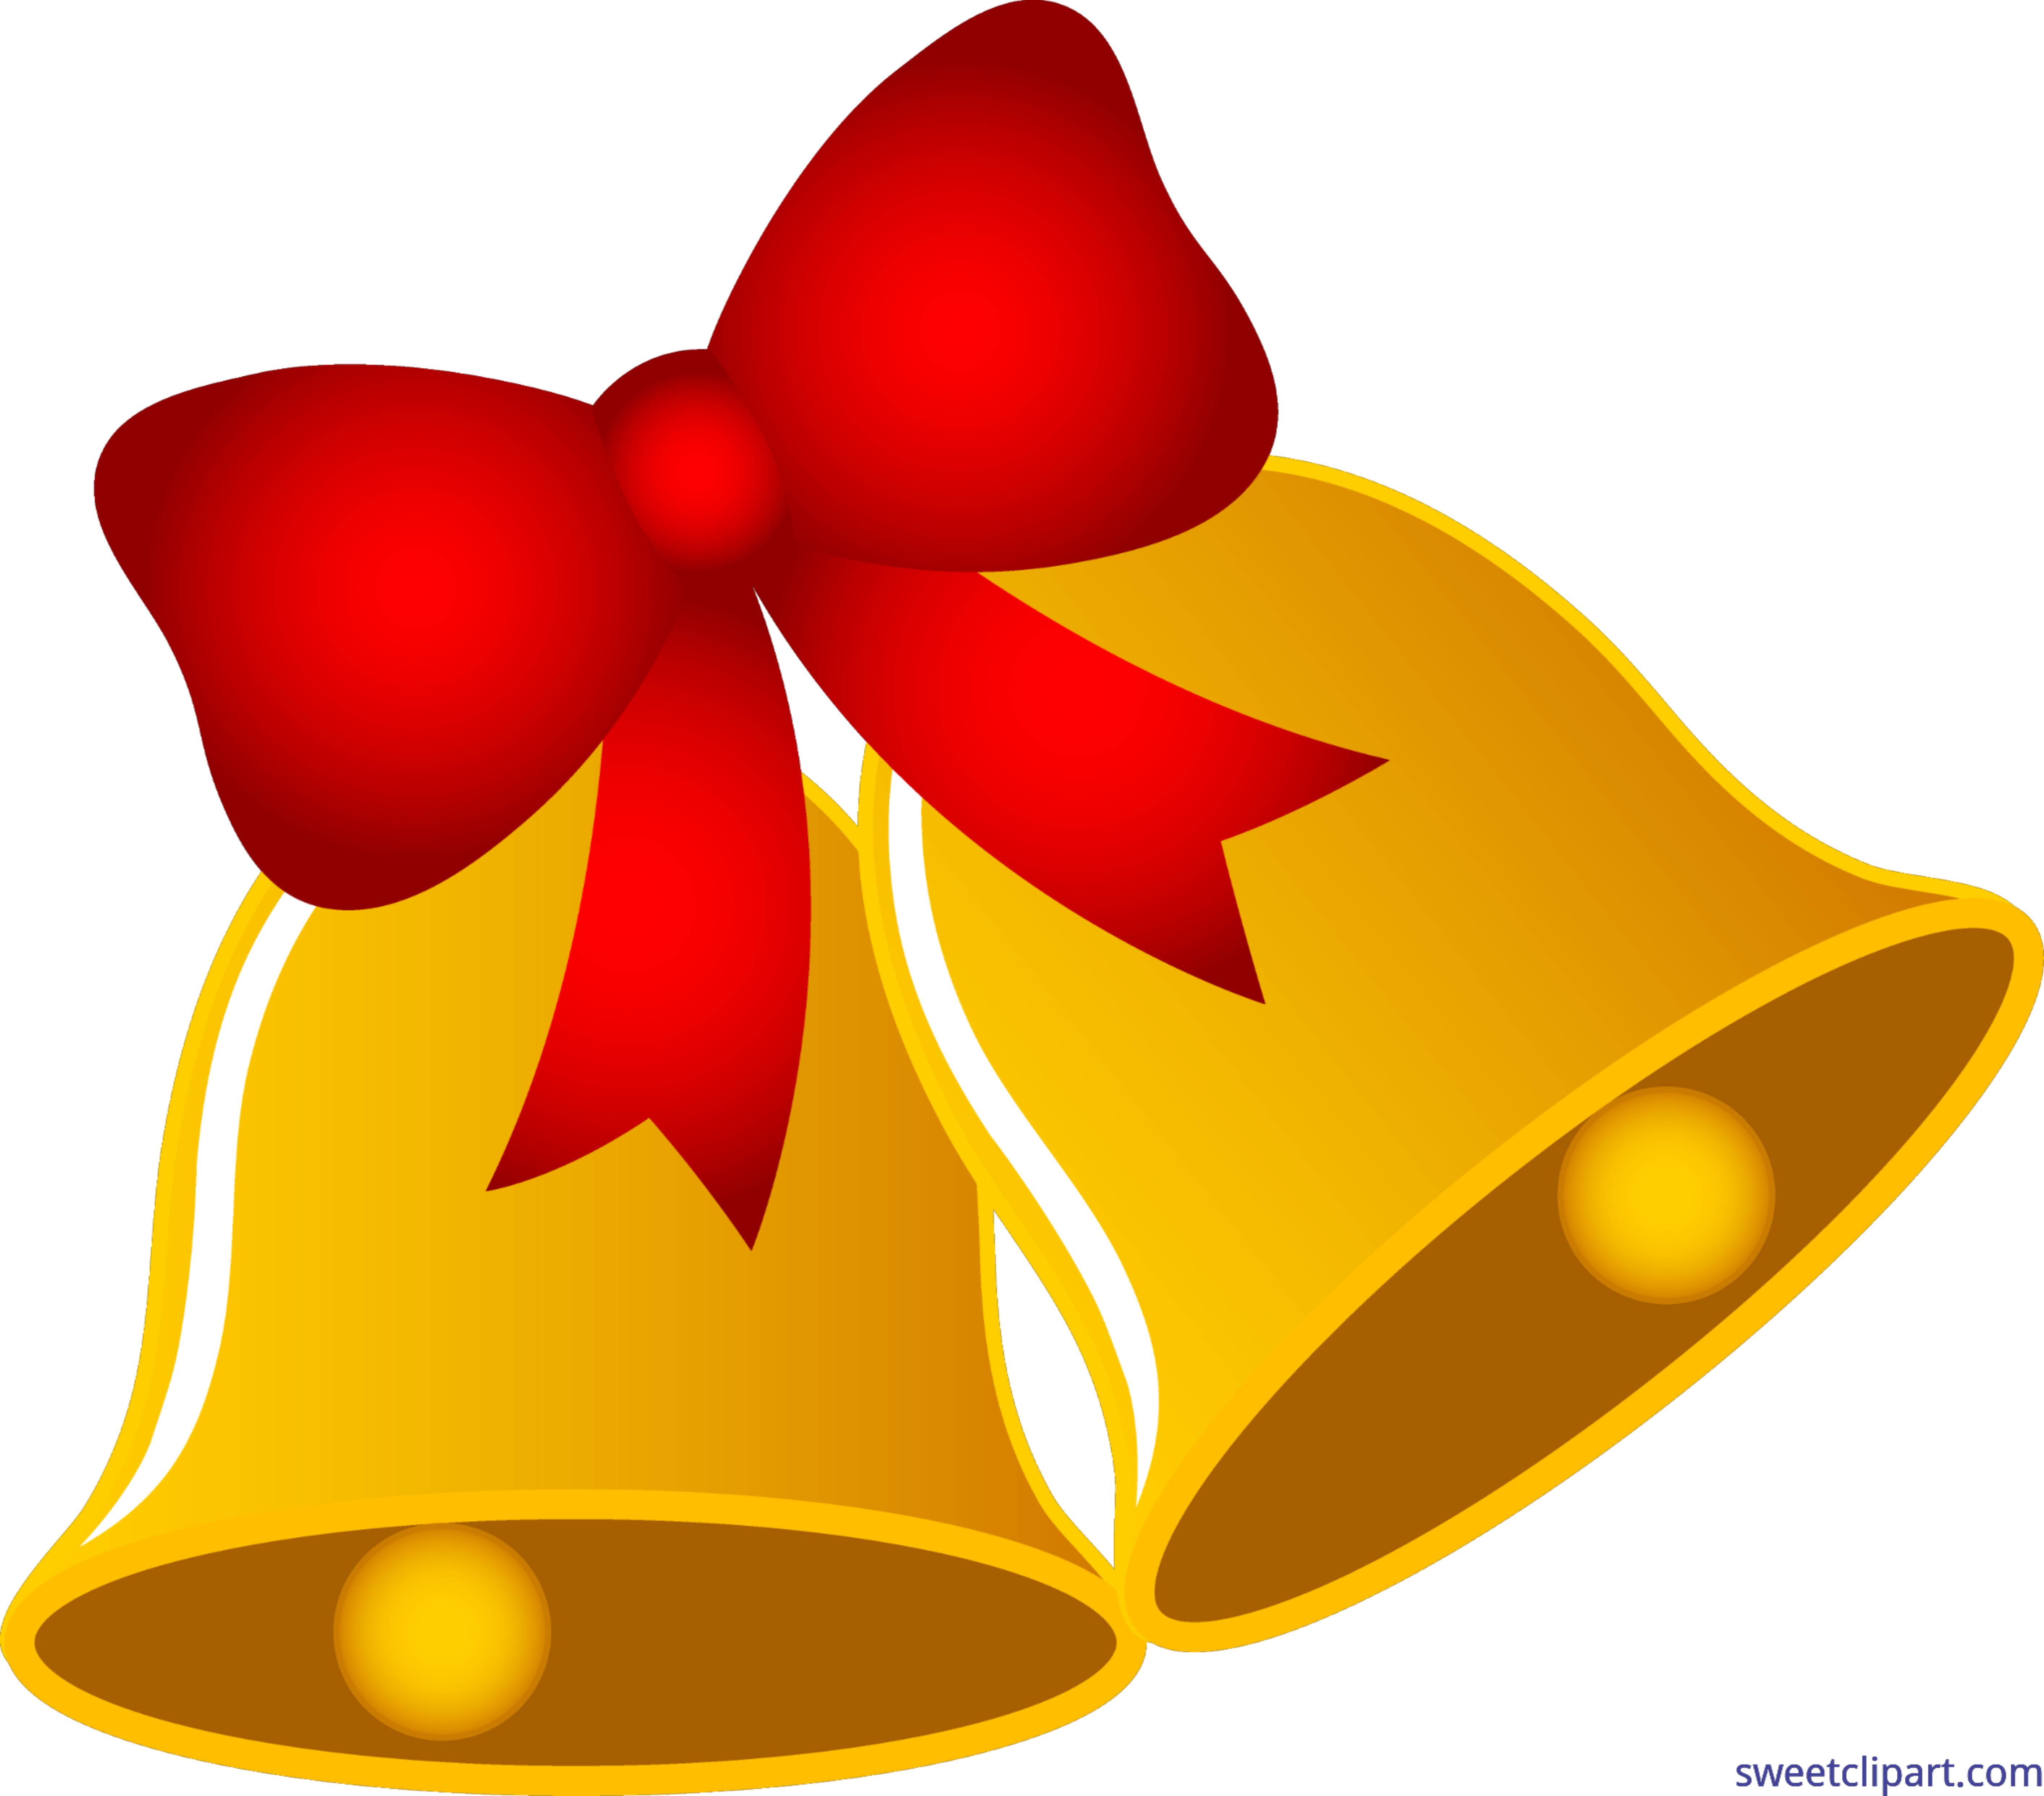 Christmas ribbon border clipart png royalty free download Christmas Bells With Bow Clip Art - Sweet Clip Art png royalty free download